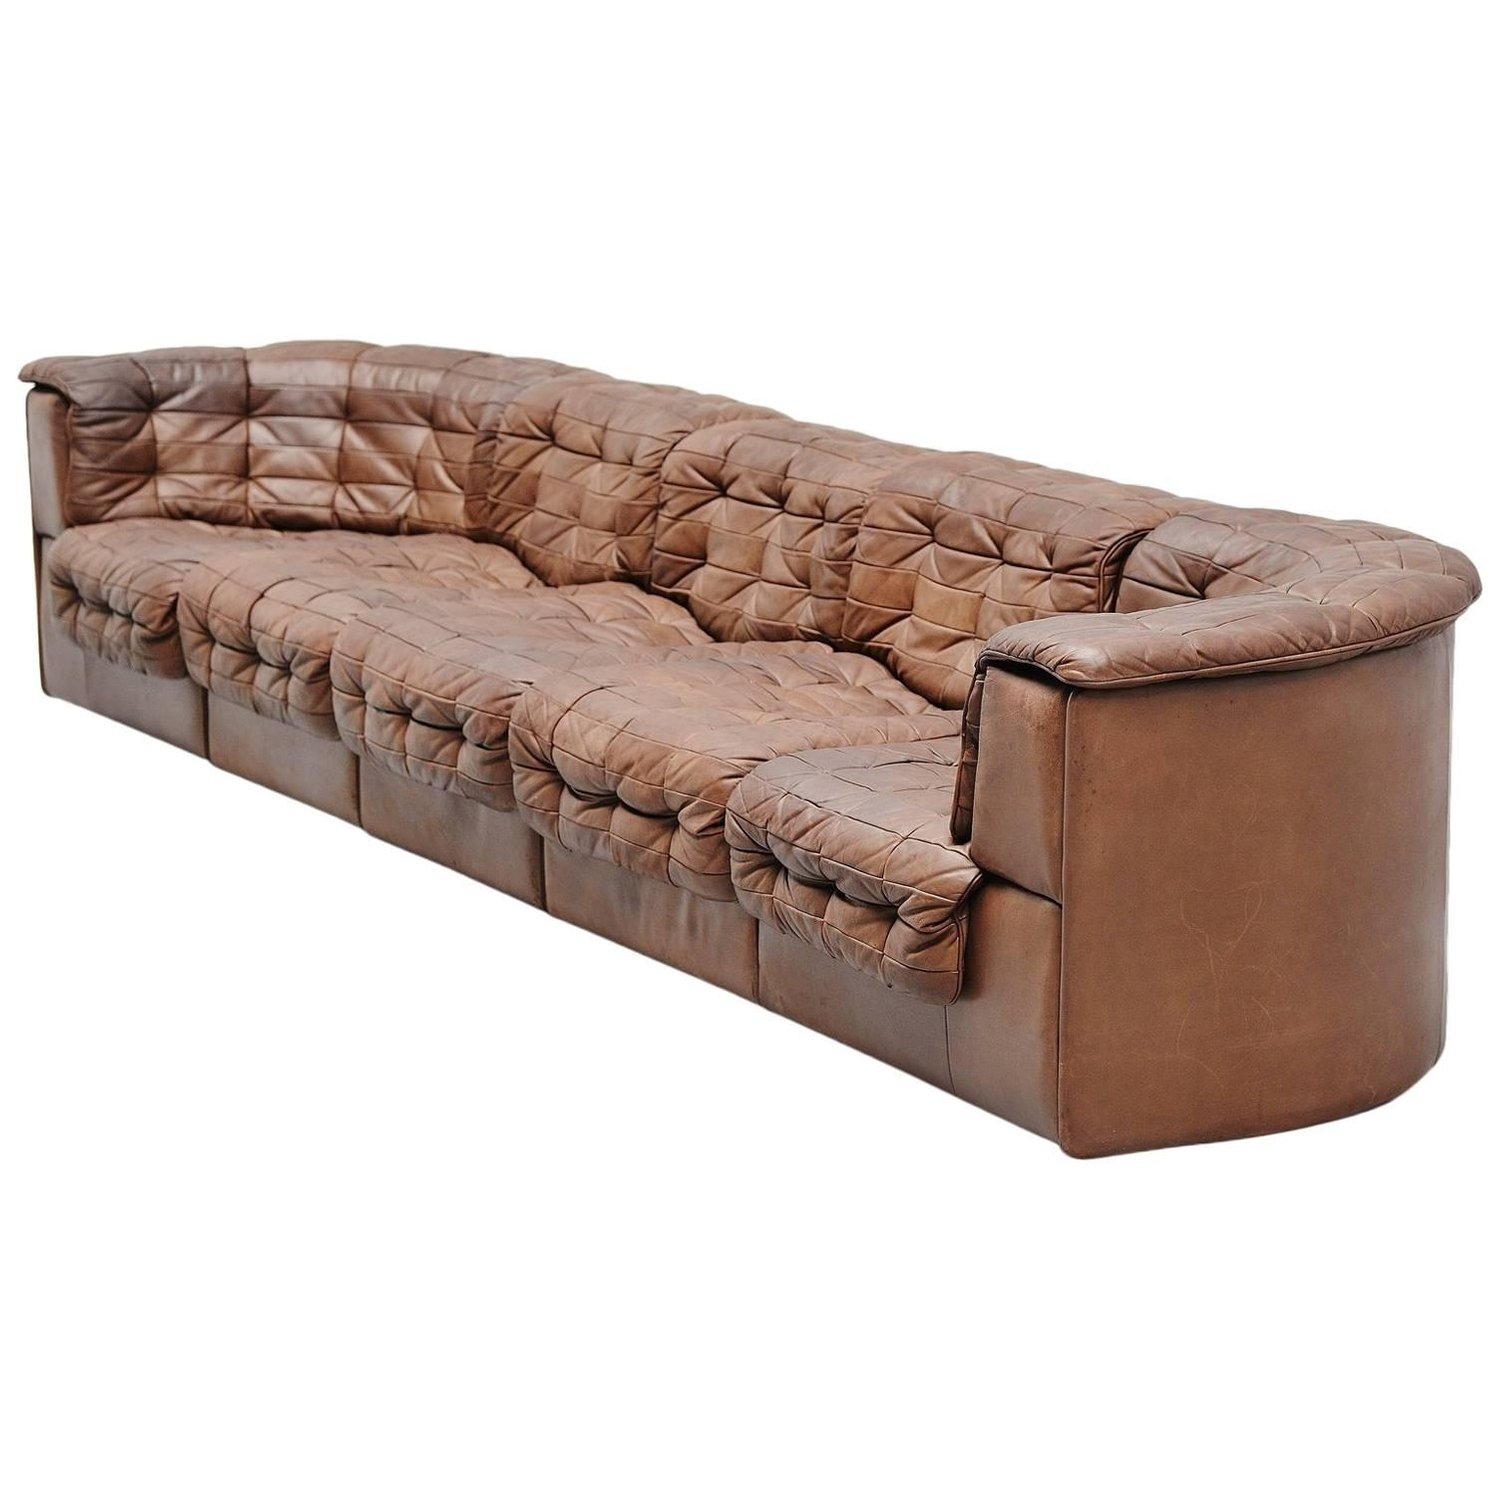 Sectional Couches Buffalo Ny | Reference Of Sofa And Couch For Sectional Sofas At Buffalo Ny (View 14 of 15)